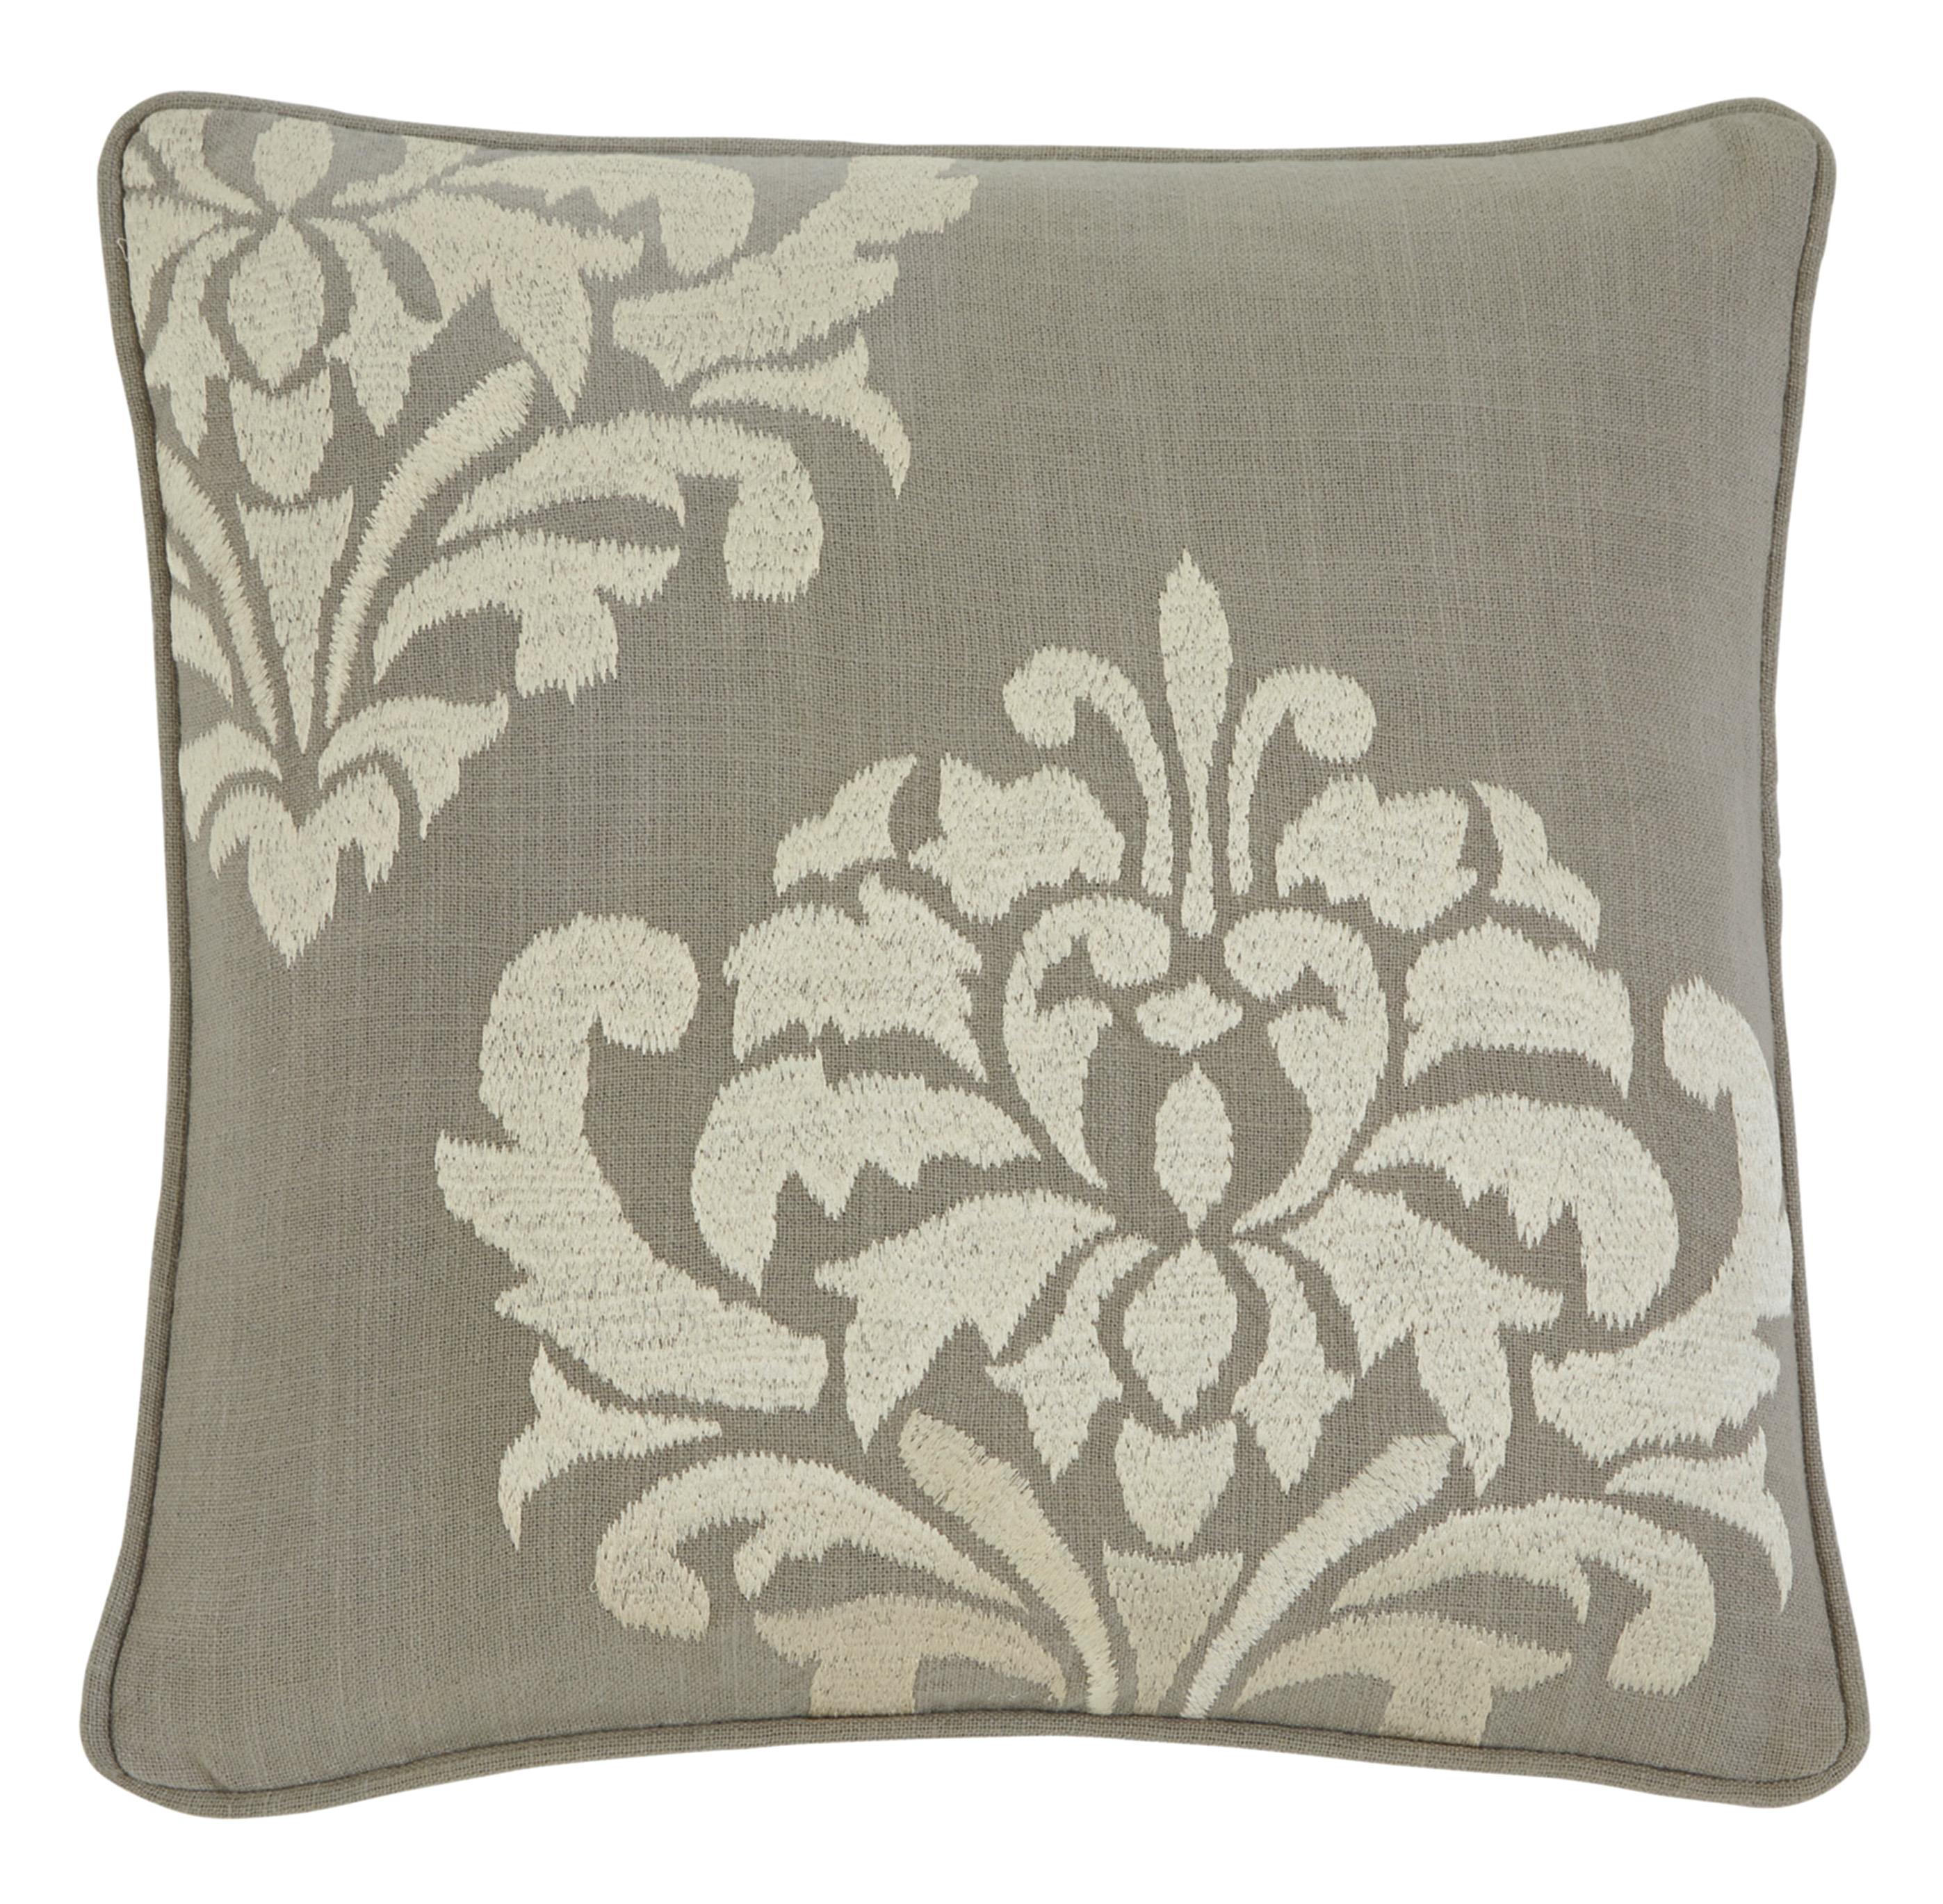 Signature Design by Ashley Pillows Damask - Gray Pillow Cover - Item Number: A1000329P